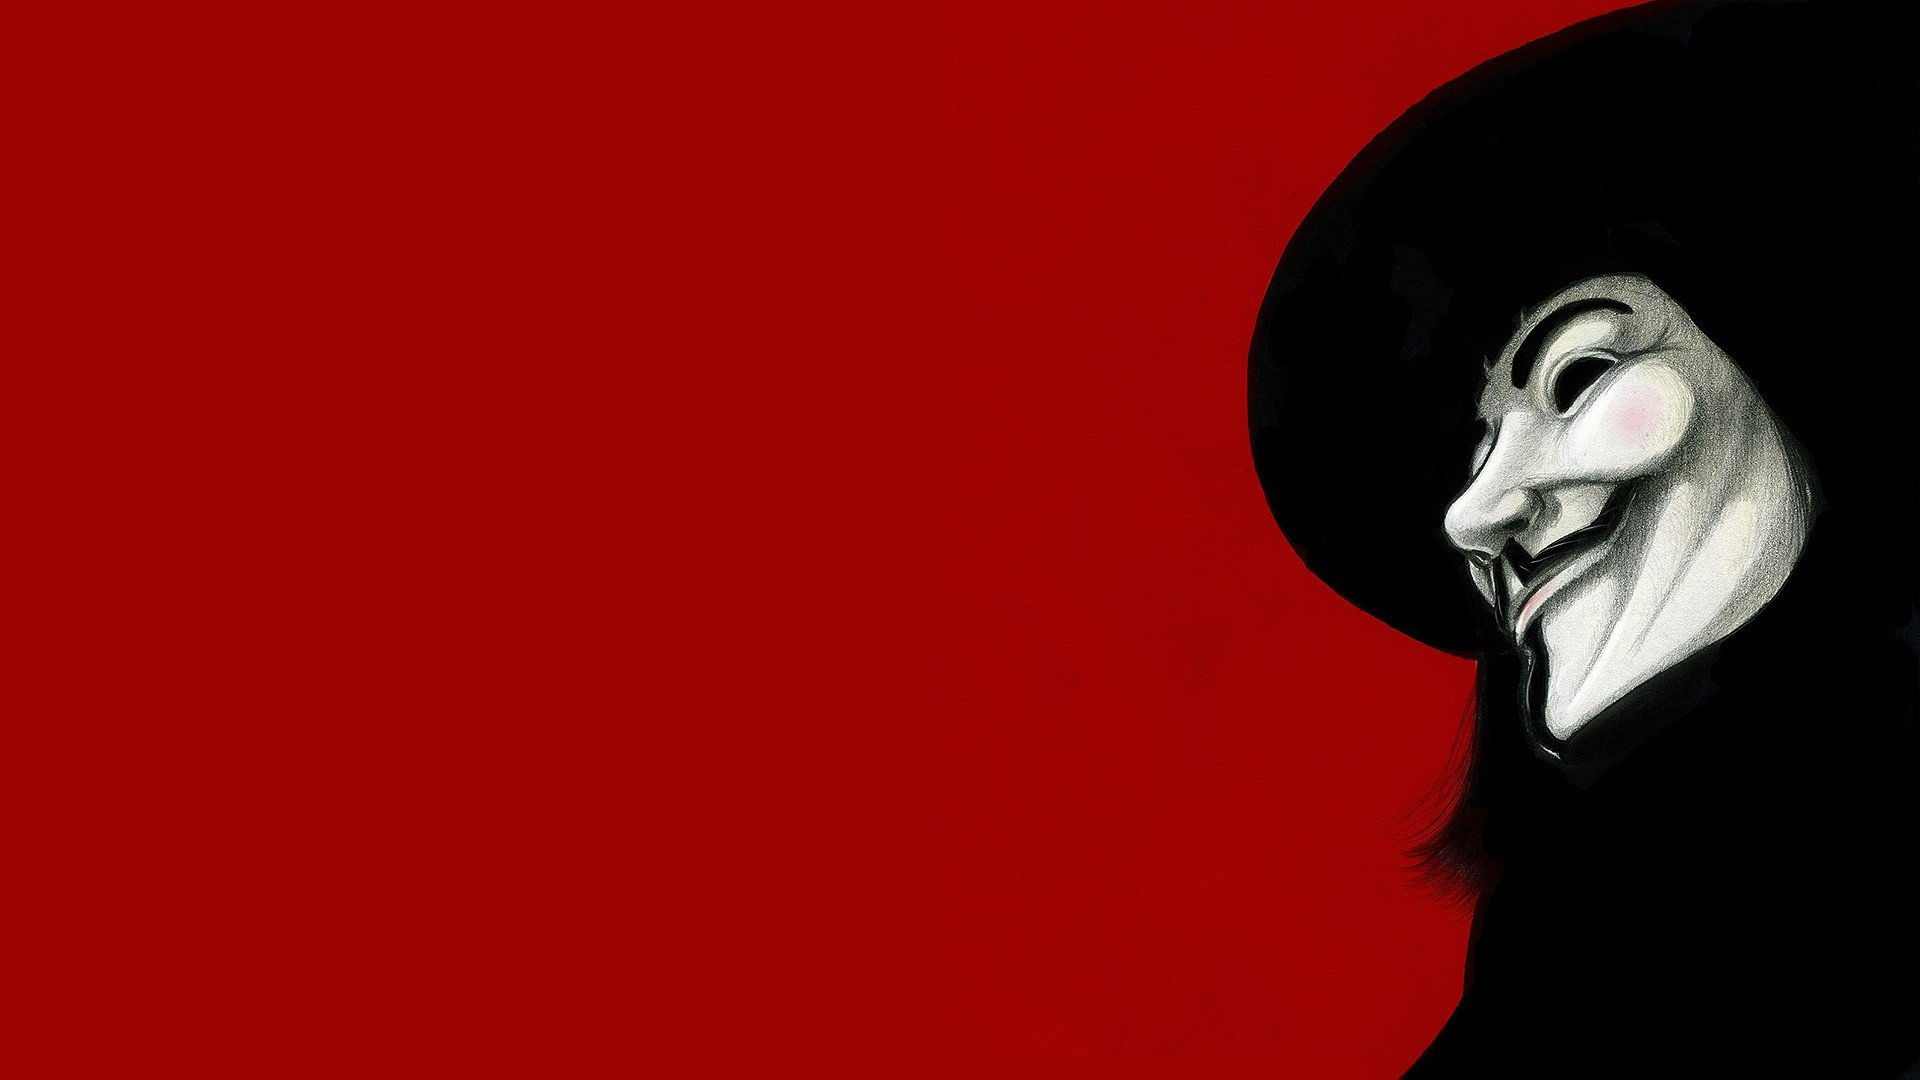 Free Download Movies Guy Fawkes V For Vendetta Fan Art Red